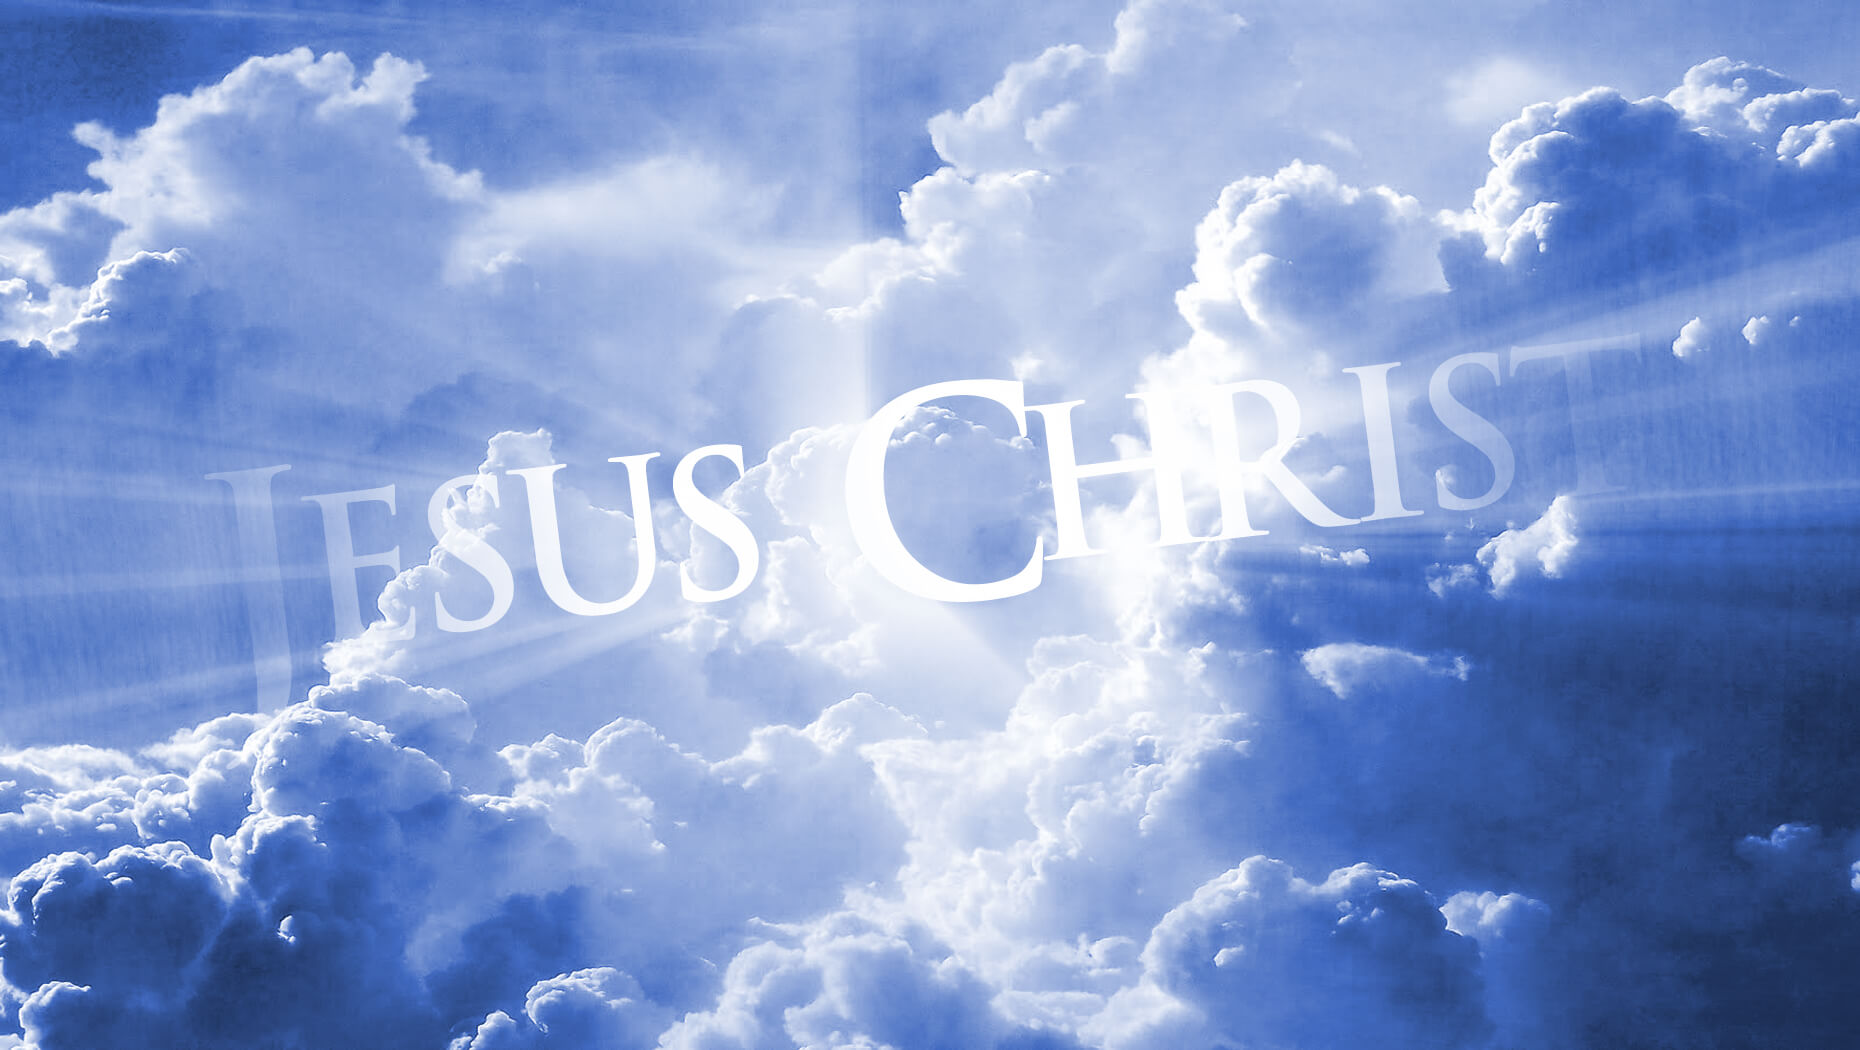 Jesus Christ HD wallpaper for download